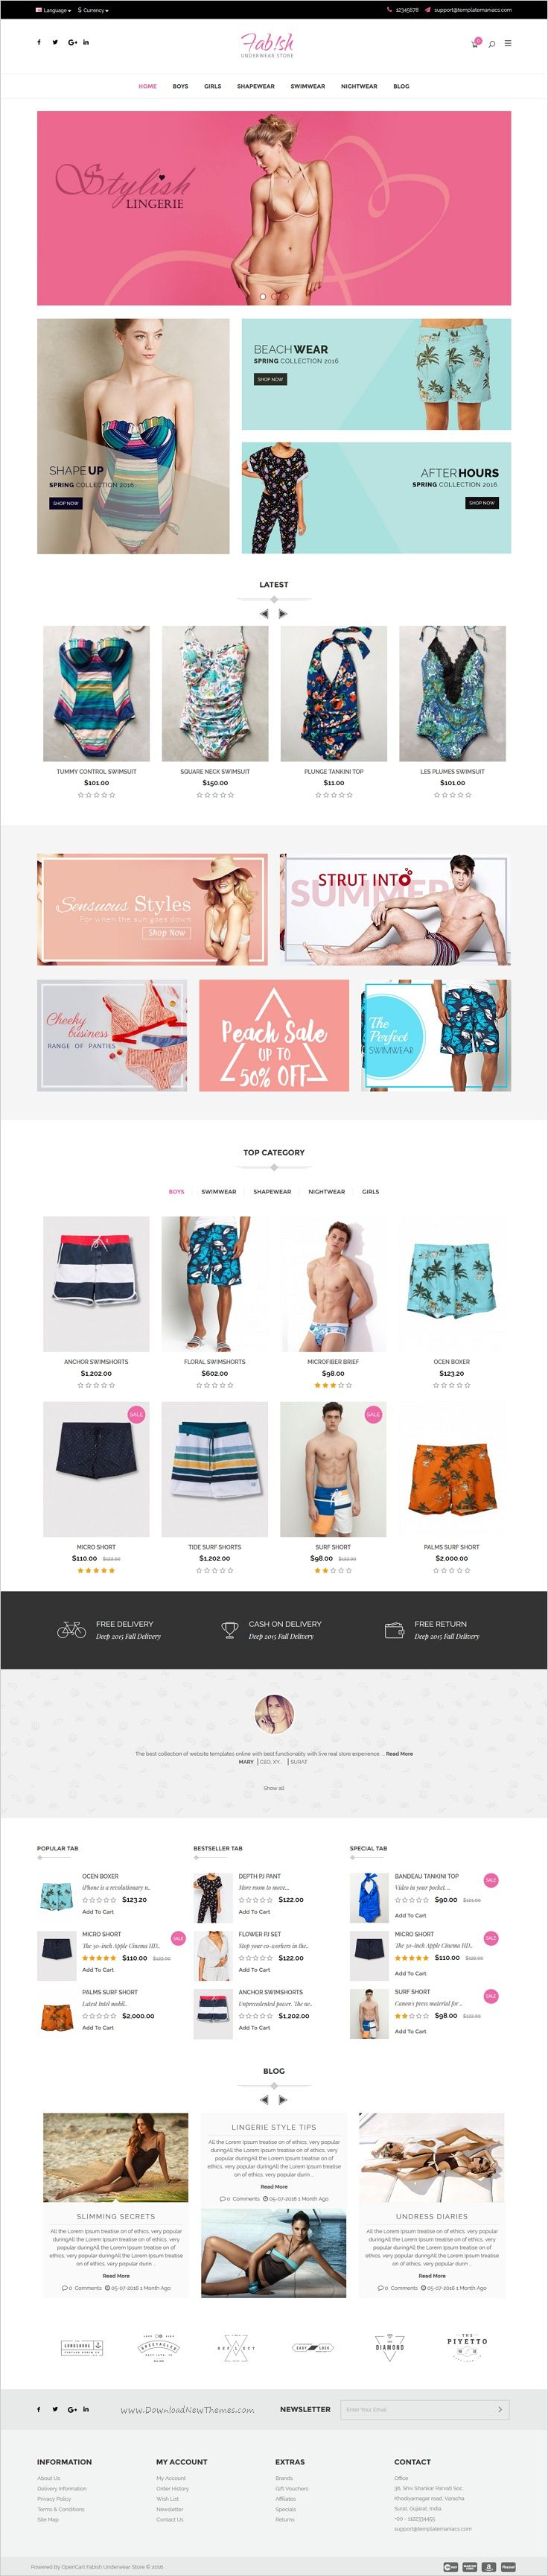 Fabish is an advanced @Opencart theme for multipurpose #underwear #lingerie #swimwear #nightwear shop eCommerce website with 4 stunning homepage layouts download now➯ https://themeforest.net/item/fabsh-responsive-opencart-theme/17118224?ref=Datasata